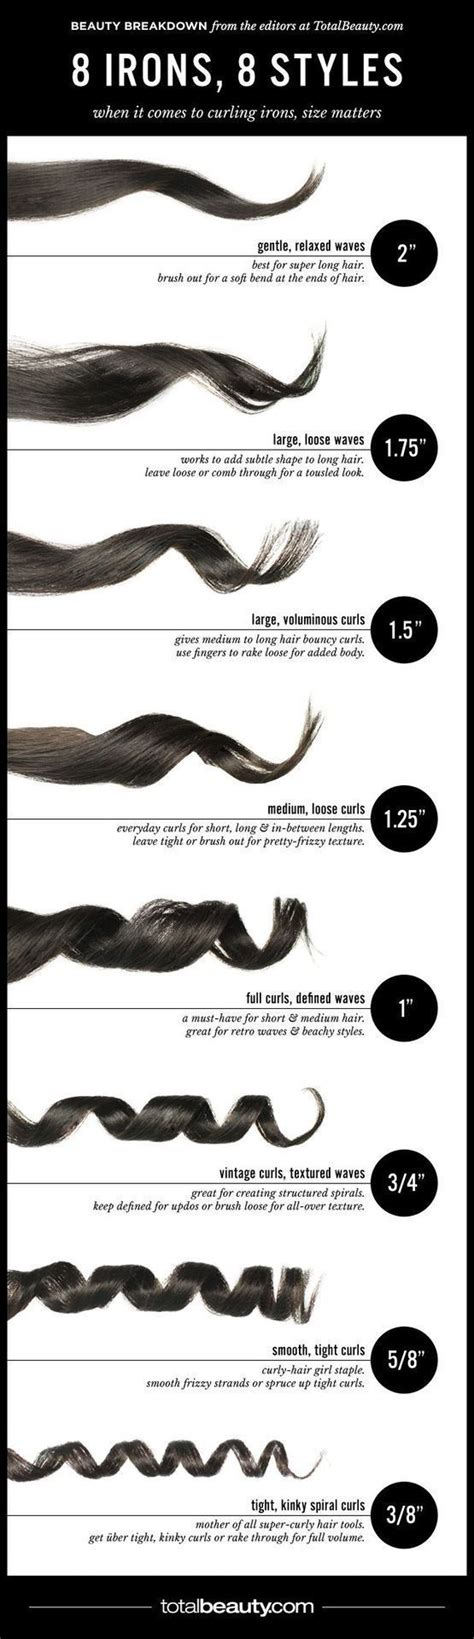 best size curling iron for medium length hair best size curling iron for medium length hair 25 best